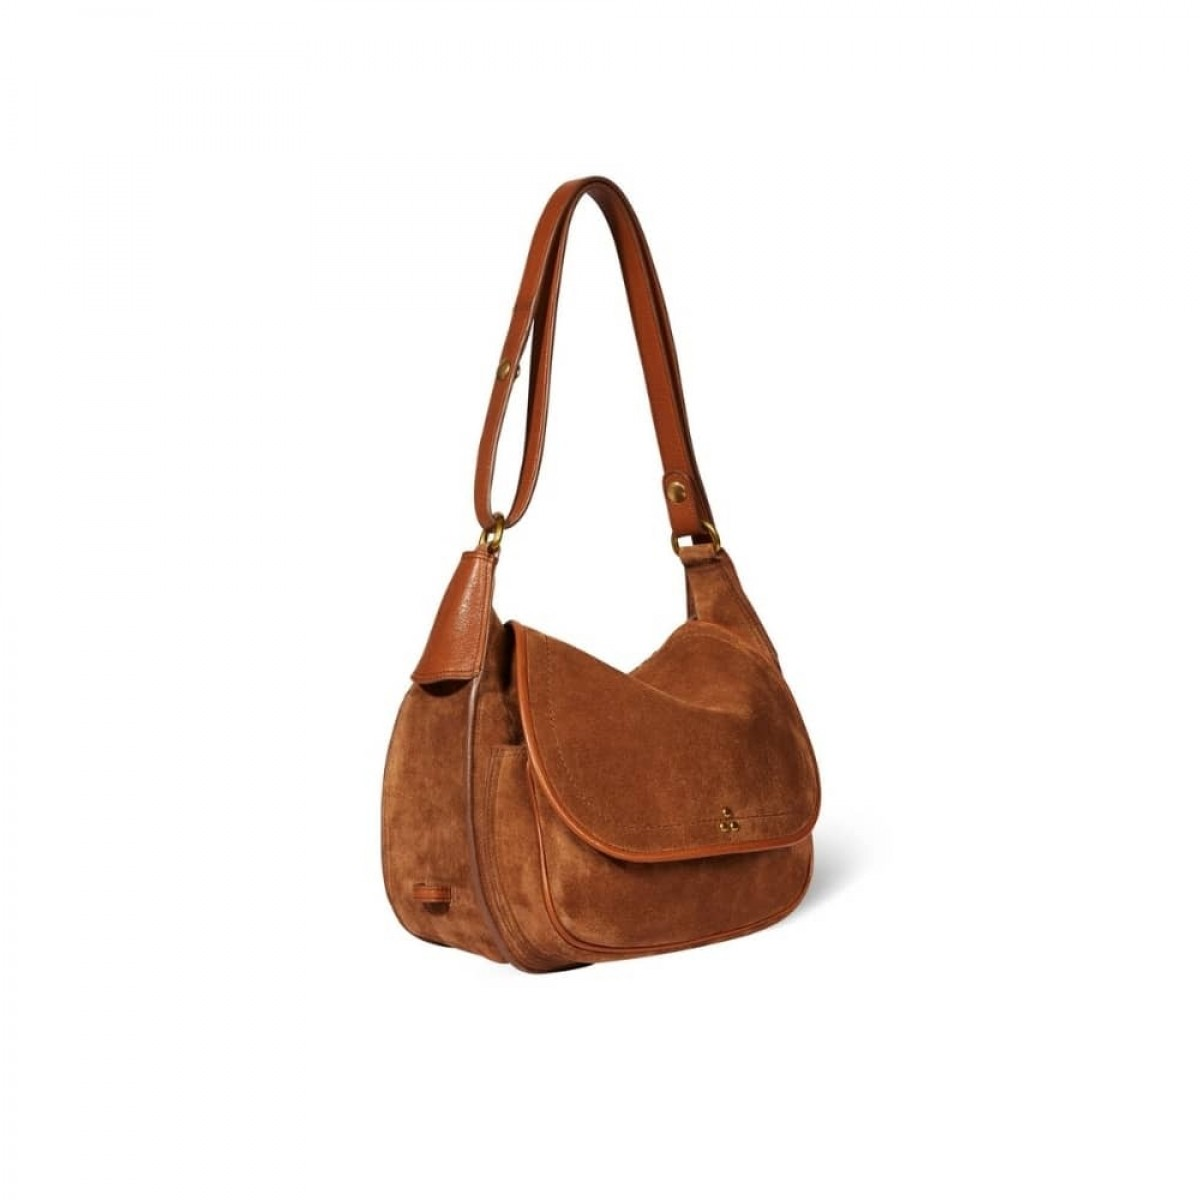 jerome dreyfuss philippe - tabac - front